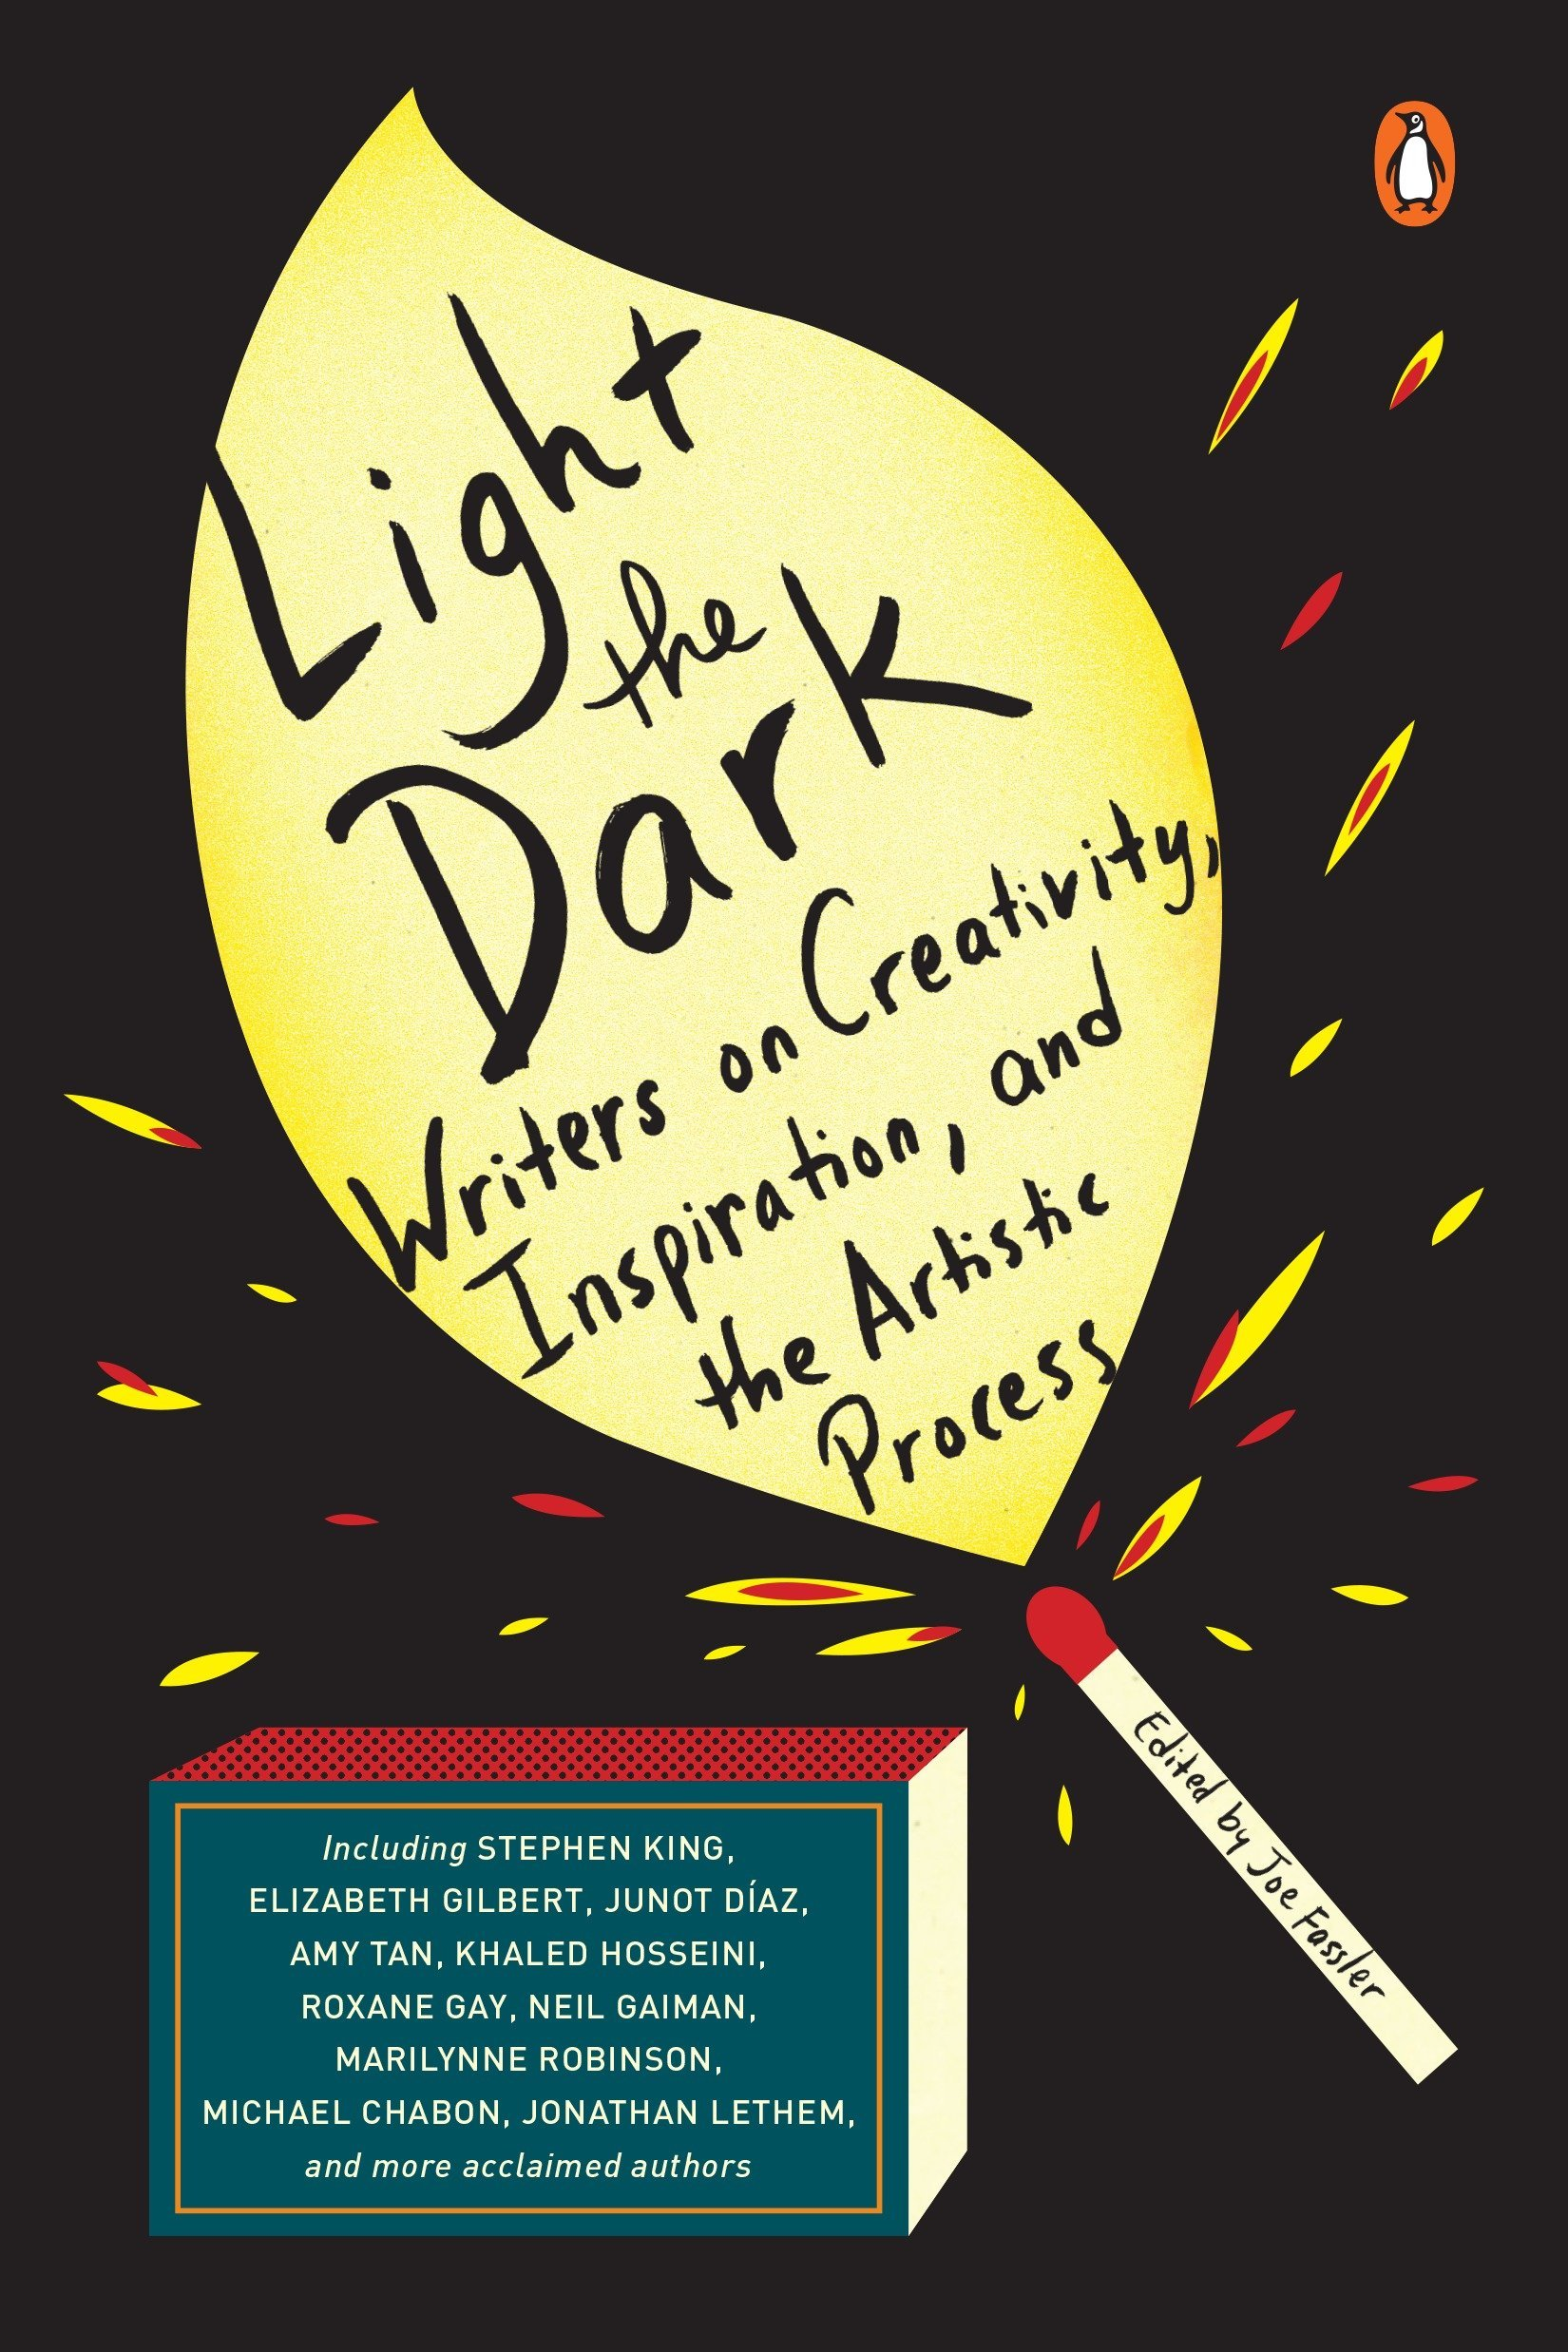 Light The Dark Writers On Creativity Inspiration And The Artistic Process Fassler Joe 9780143130840 Amazon Com Books